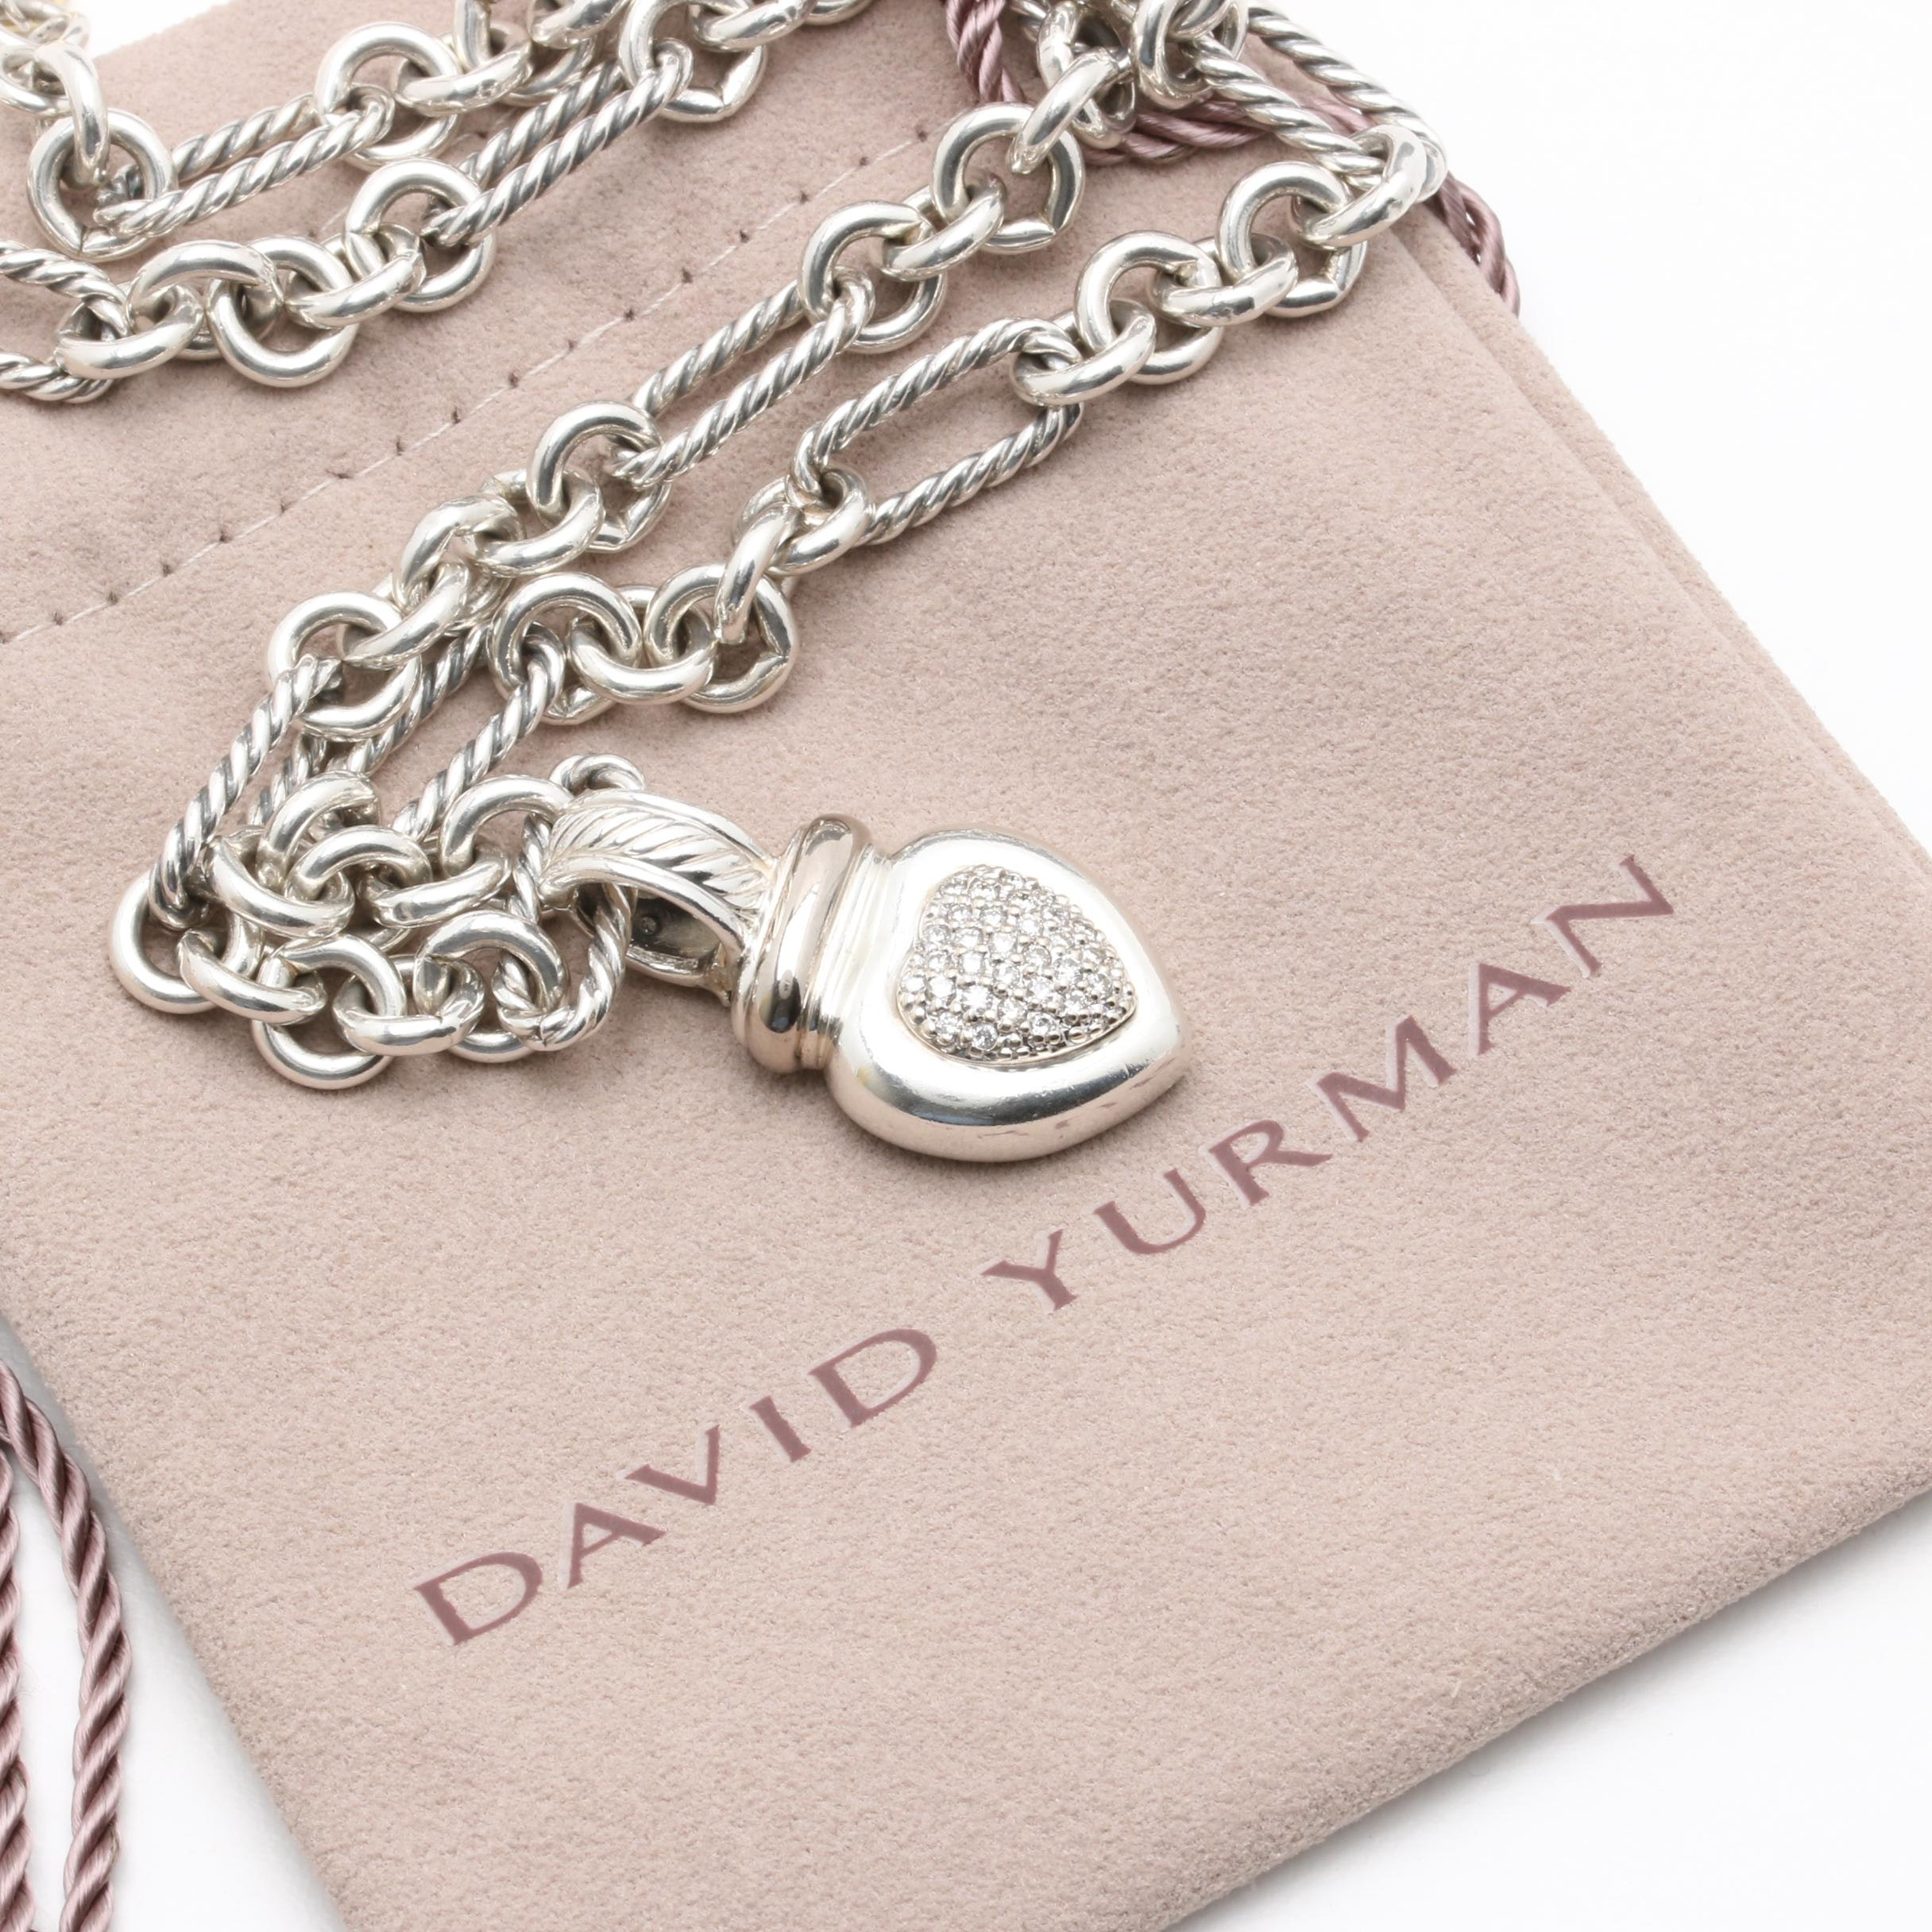 David Yurman Sterling Silver Diamond Heart Necklace With 18K Accents